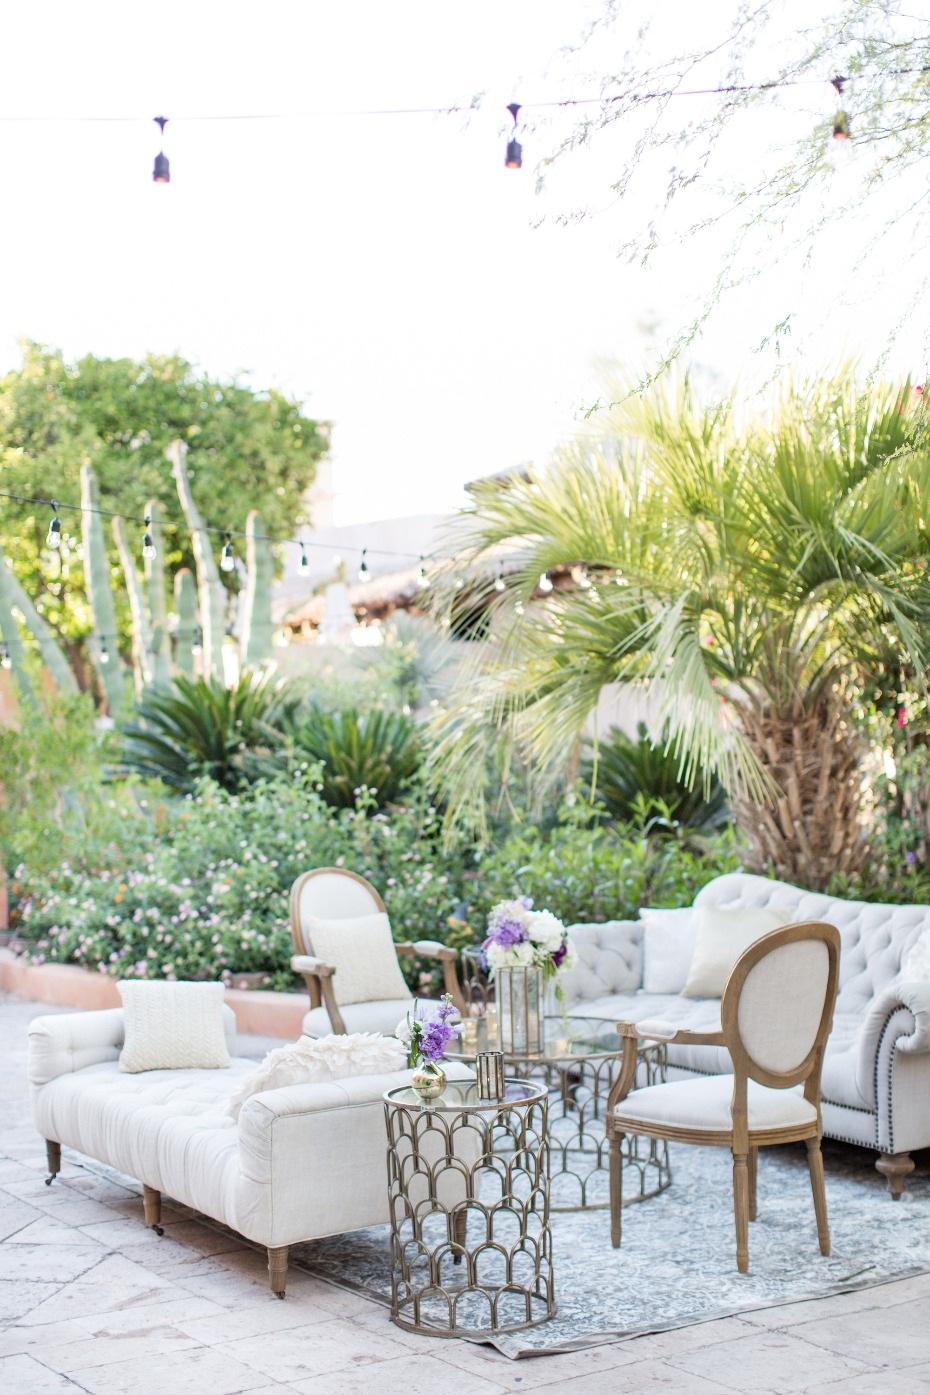 Chic outdoor lounge area